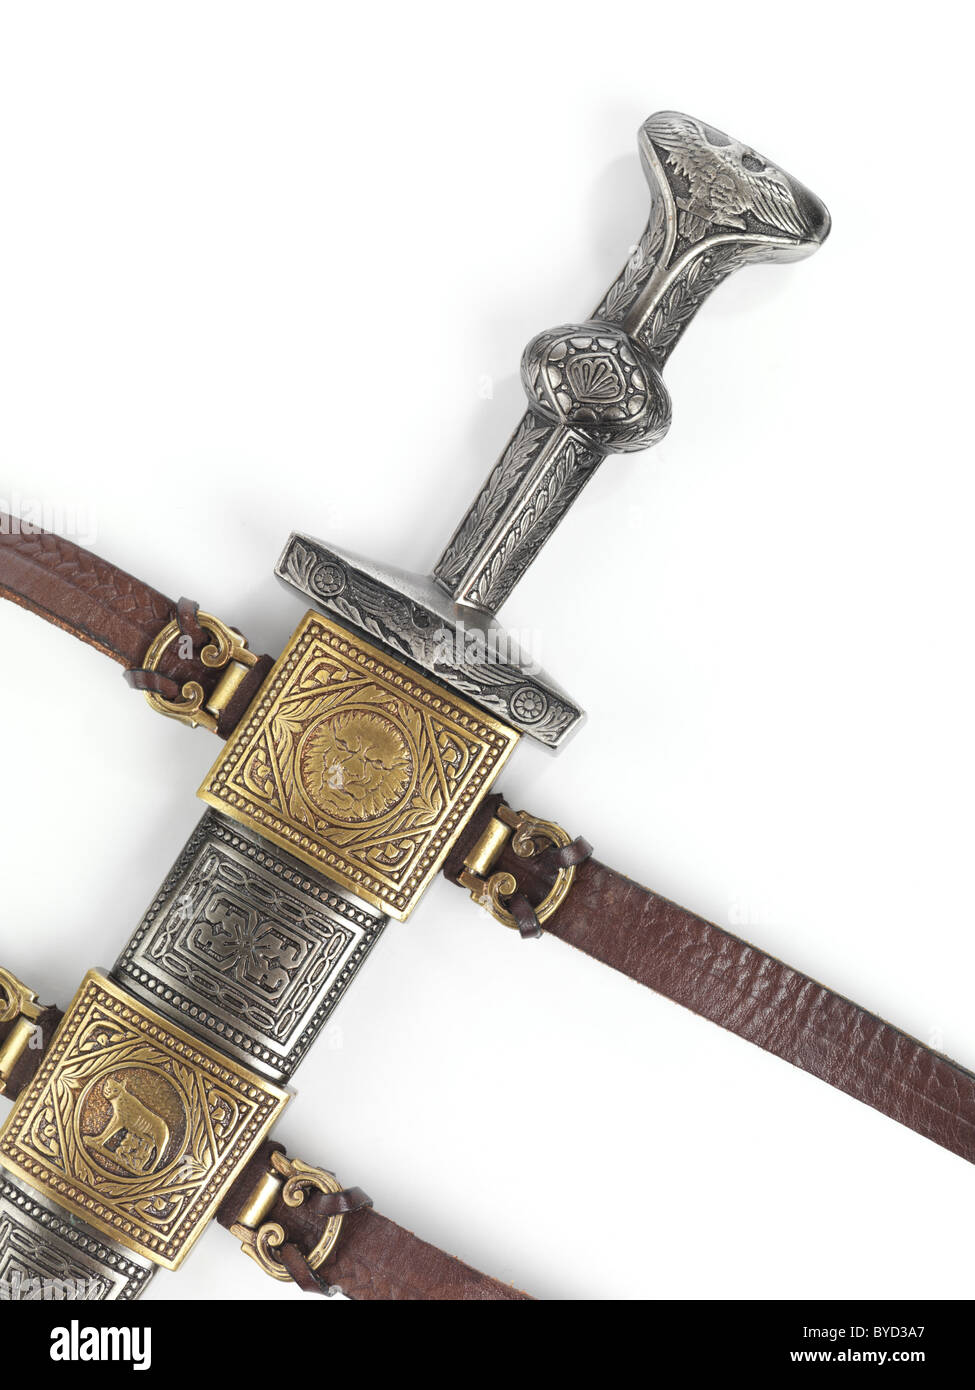 Antique Roman dagger short sword in scabbard isolated on white background - Stock Image